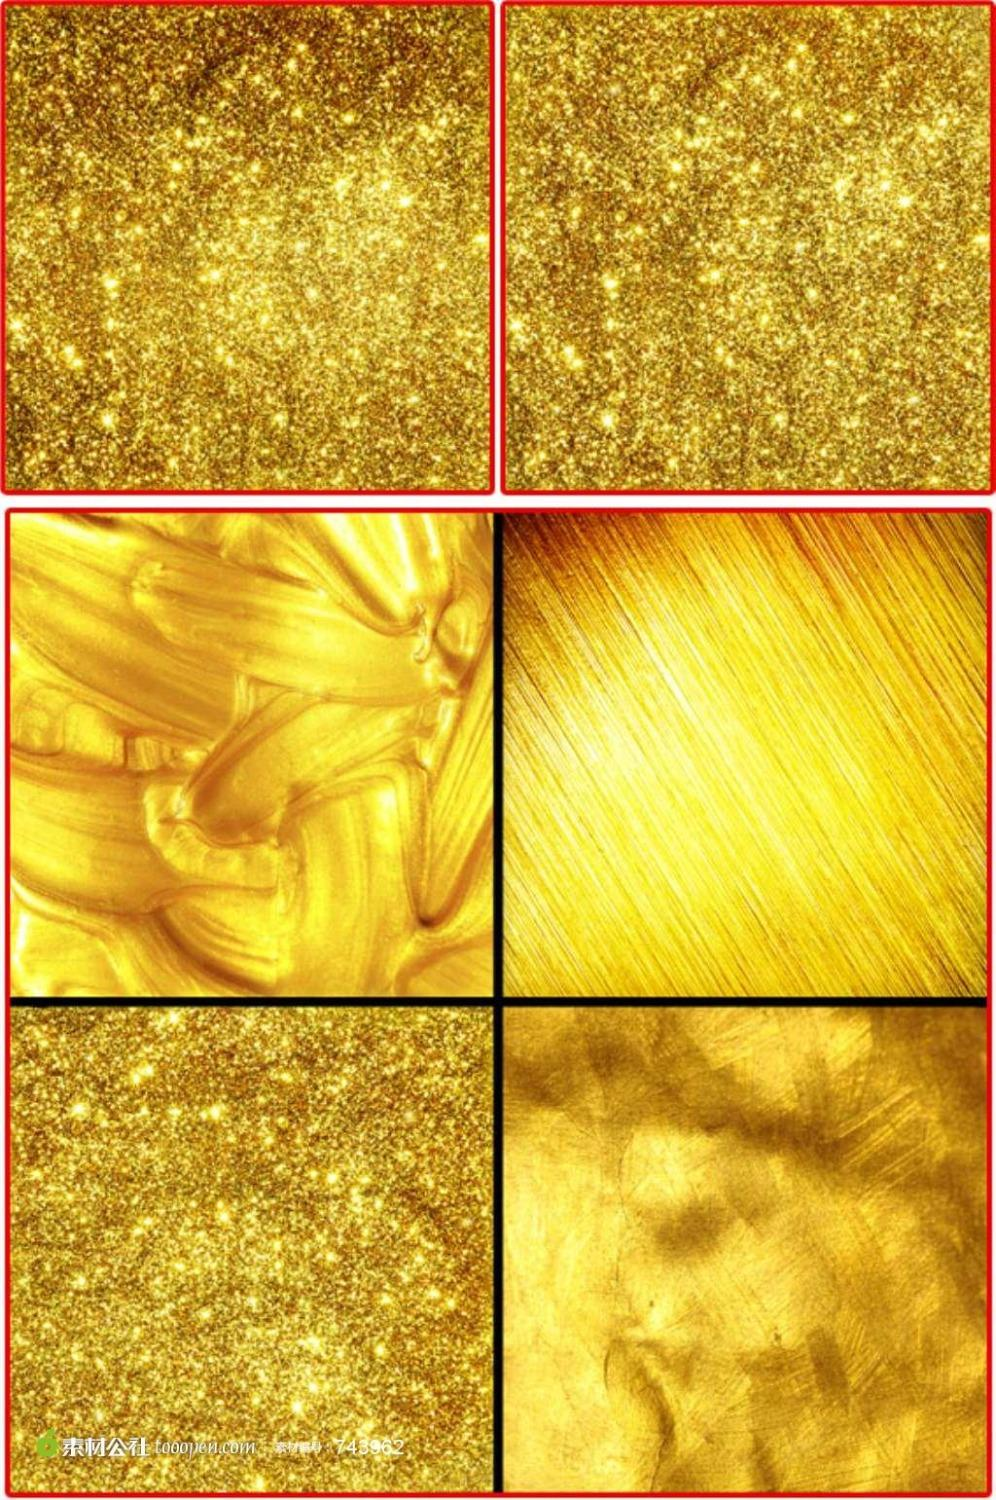 a75781d34807a Wholesale-500g/lot ,Gold powder Pigment for DIY nail decoration,gold  coating powder,gold paint pigment,Metal Gold dust